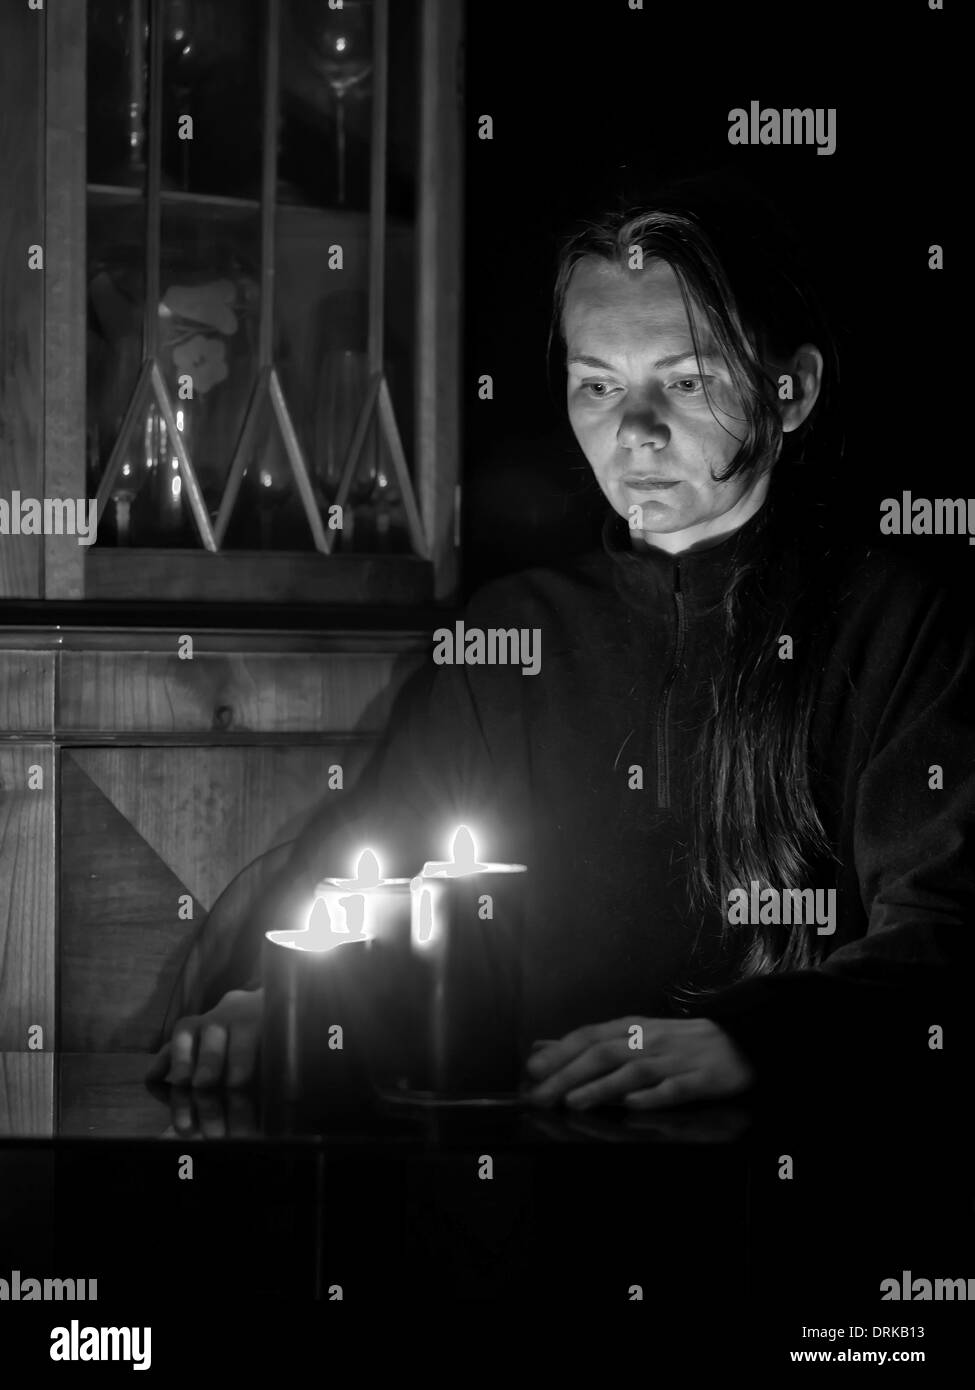 A black and white image of a female fortune teller looking into candles - Stock Image